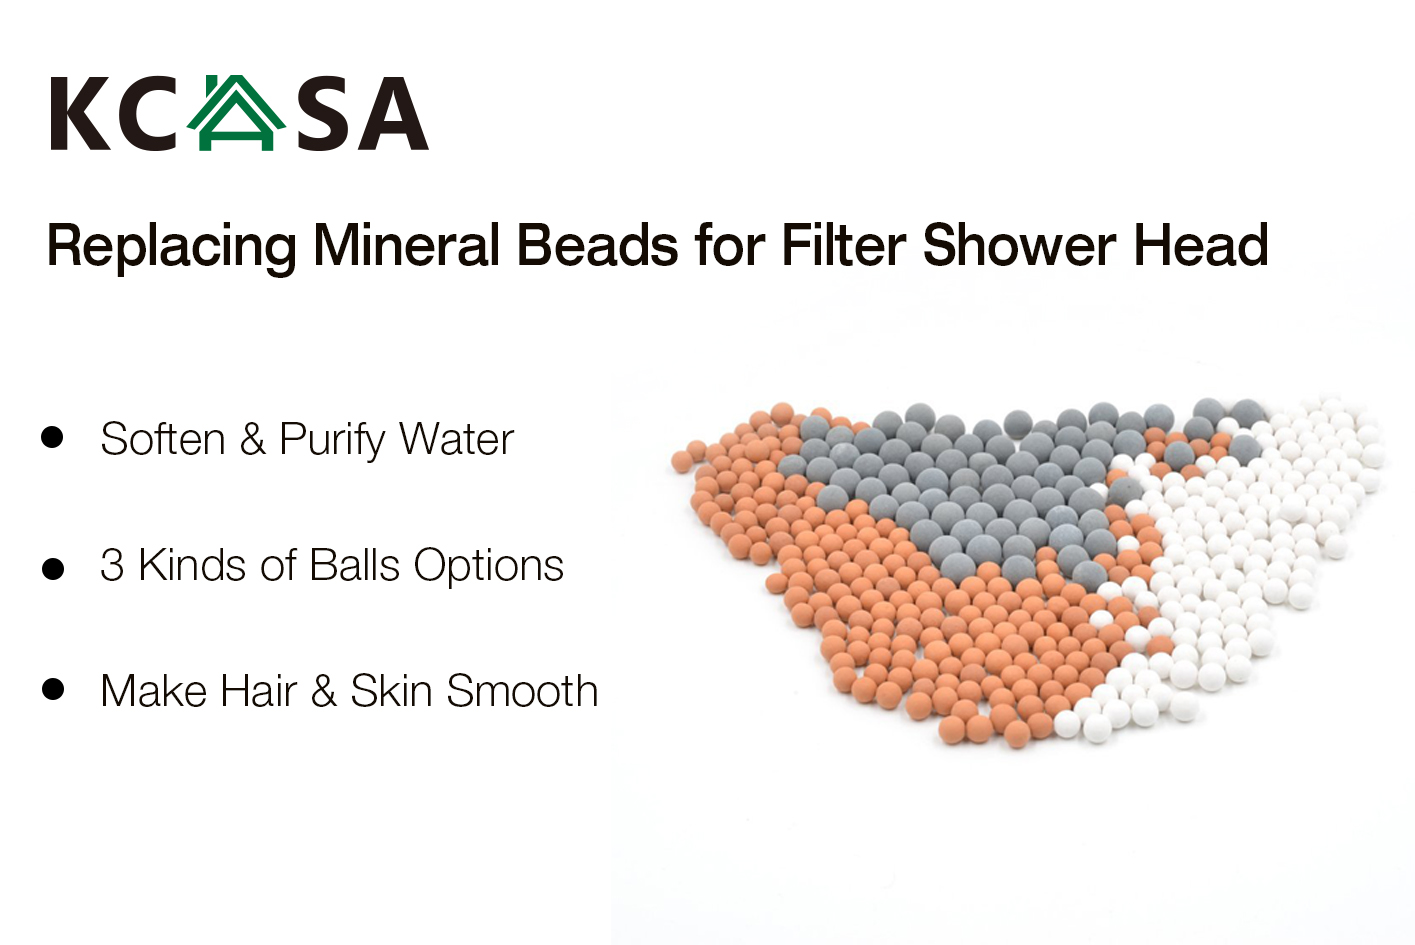 KCASA Replacing Mineral Beads Negative Ions Ceramic Energy Balls for KCASA KC-SH460 Filter Shower Head